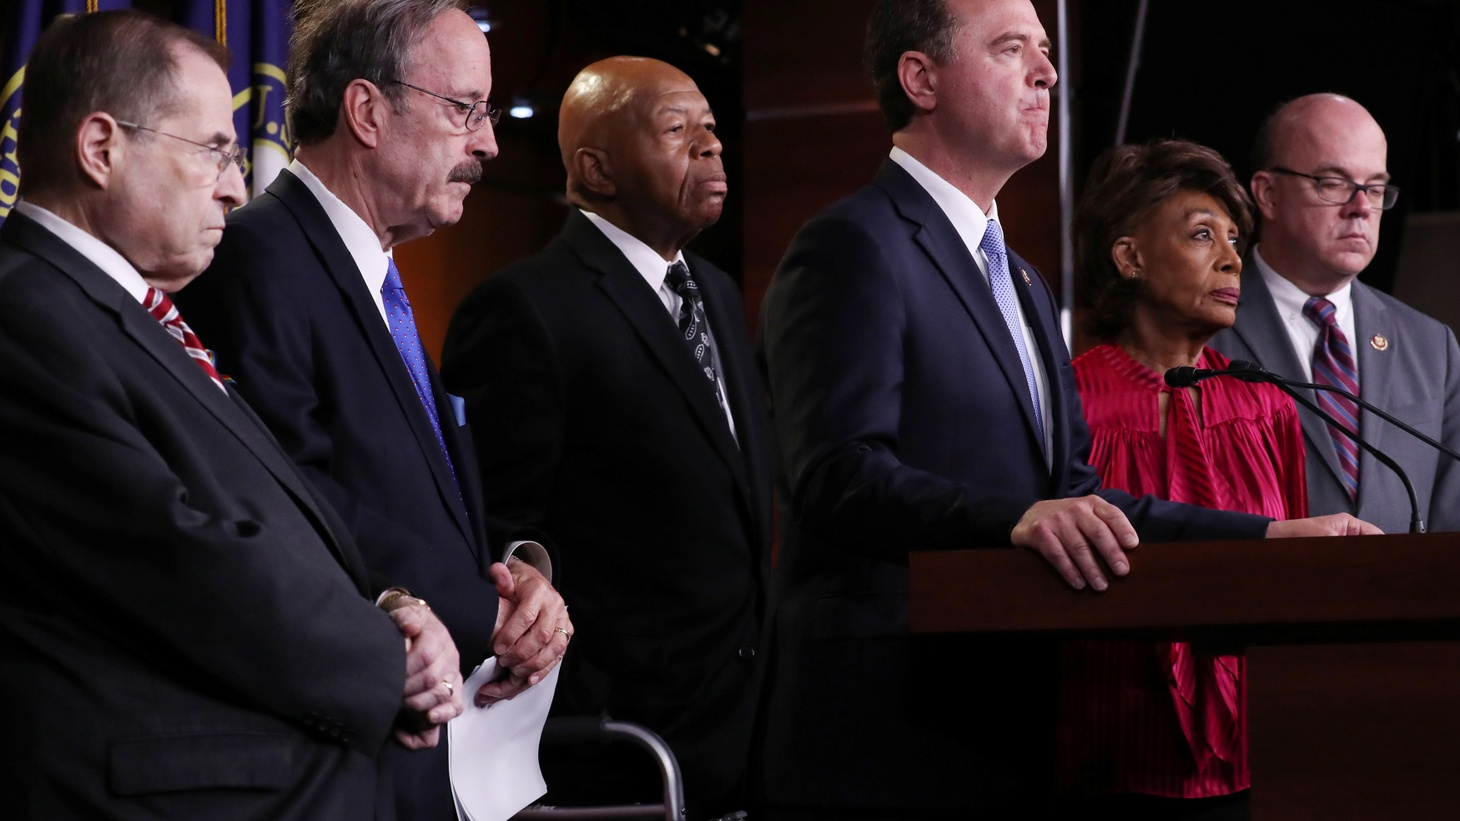 Democratic U.S. House committee chairmen Representative Jerrold Nadler (D-NY), Rep. Eliot Engel (D-NY), Rep. Elijah Cummings (D-MD), Rep. Adam Schiff (D-CA), Rep. Maxine Waters (D-CA) and Rep. Jim McGovern (D-MA) hold a news conference to discuss their investigations into the Trump administration on Capitol Hill in Washington, U.S. June 11, 2019.